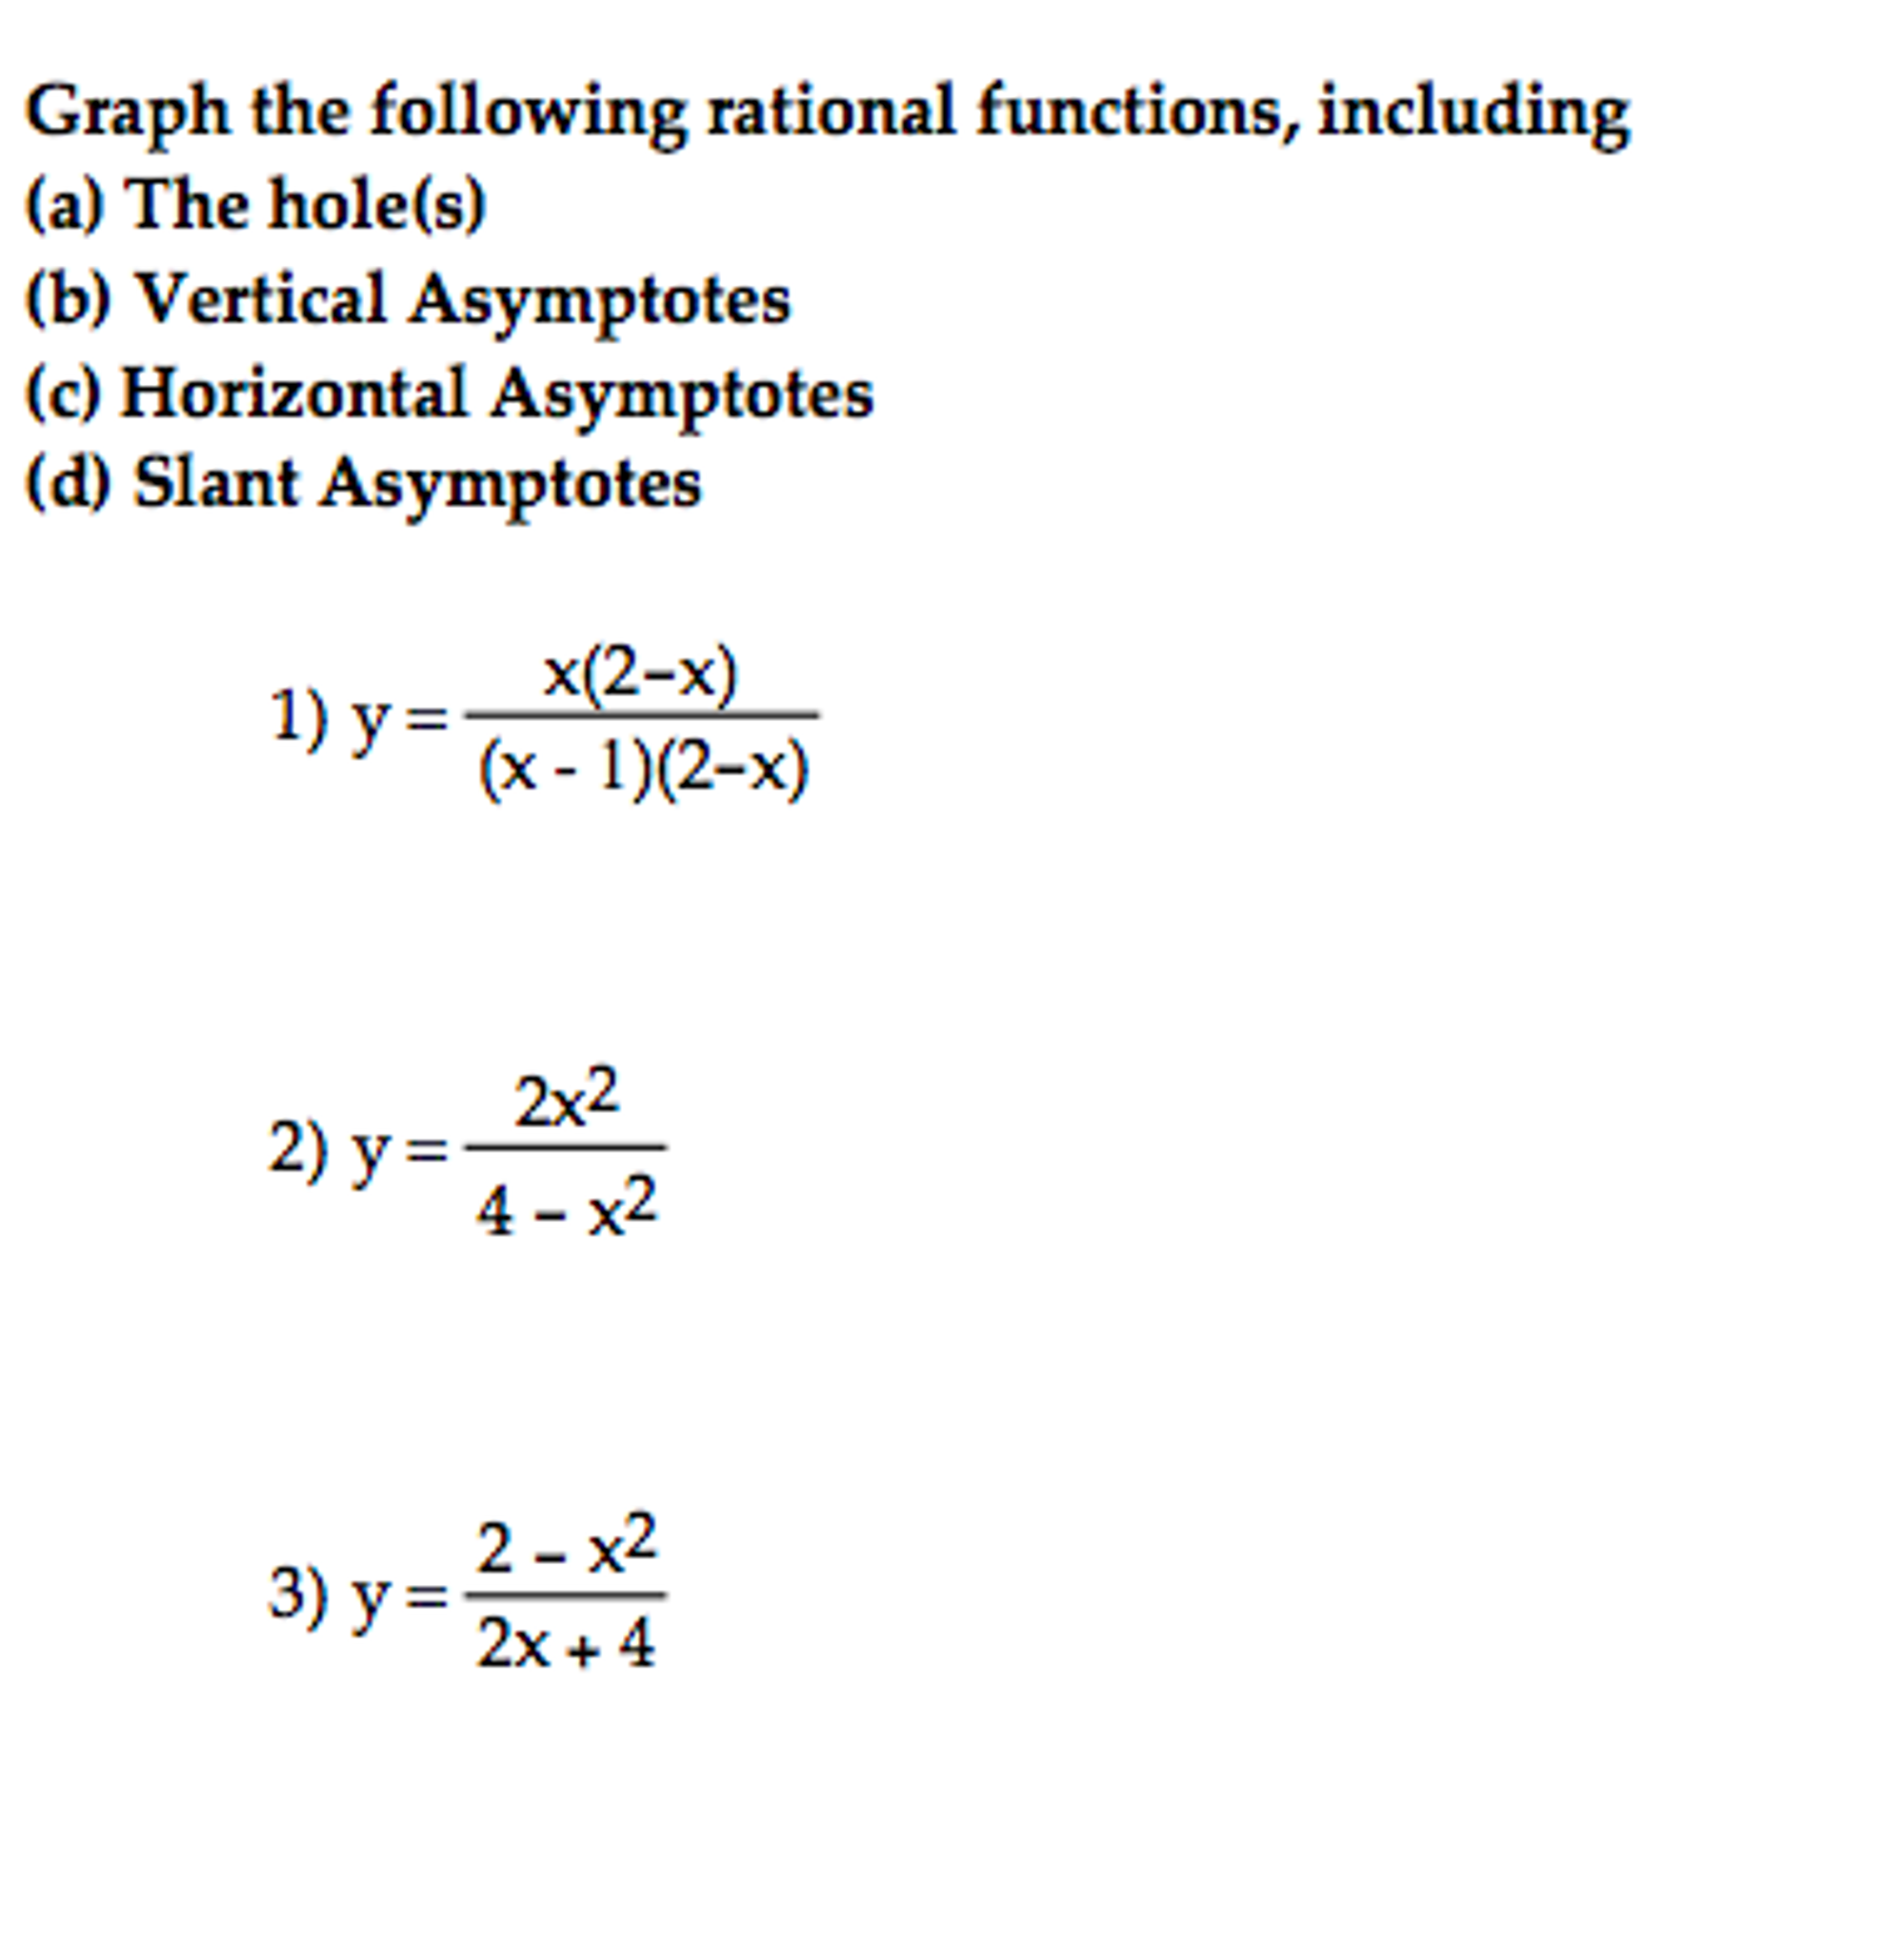 solved: graph the following rational functions, including